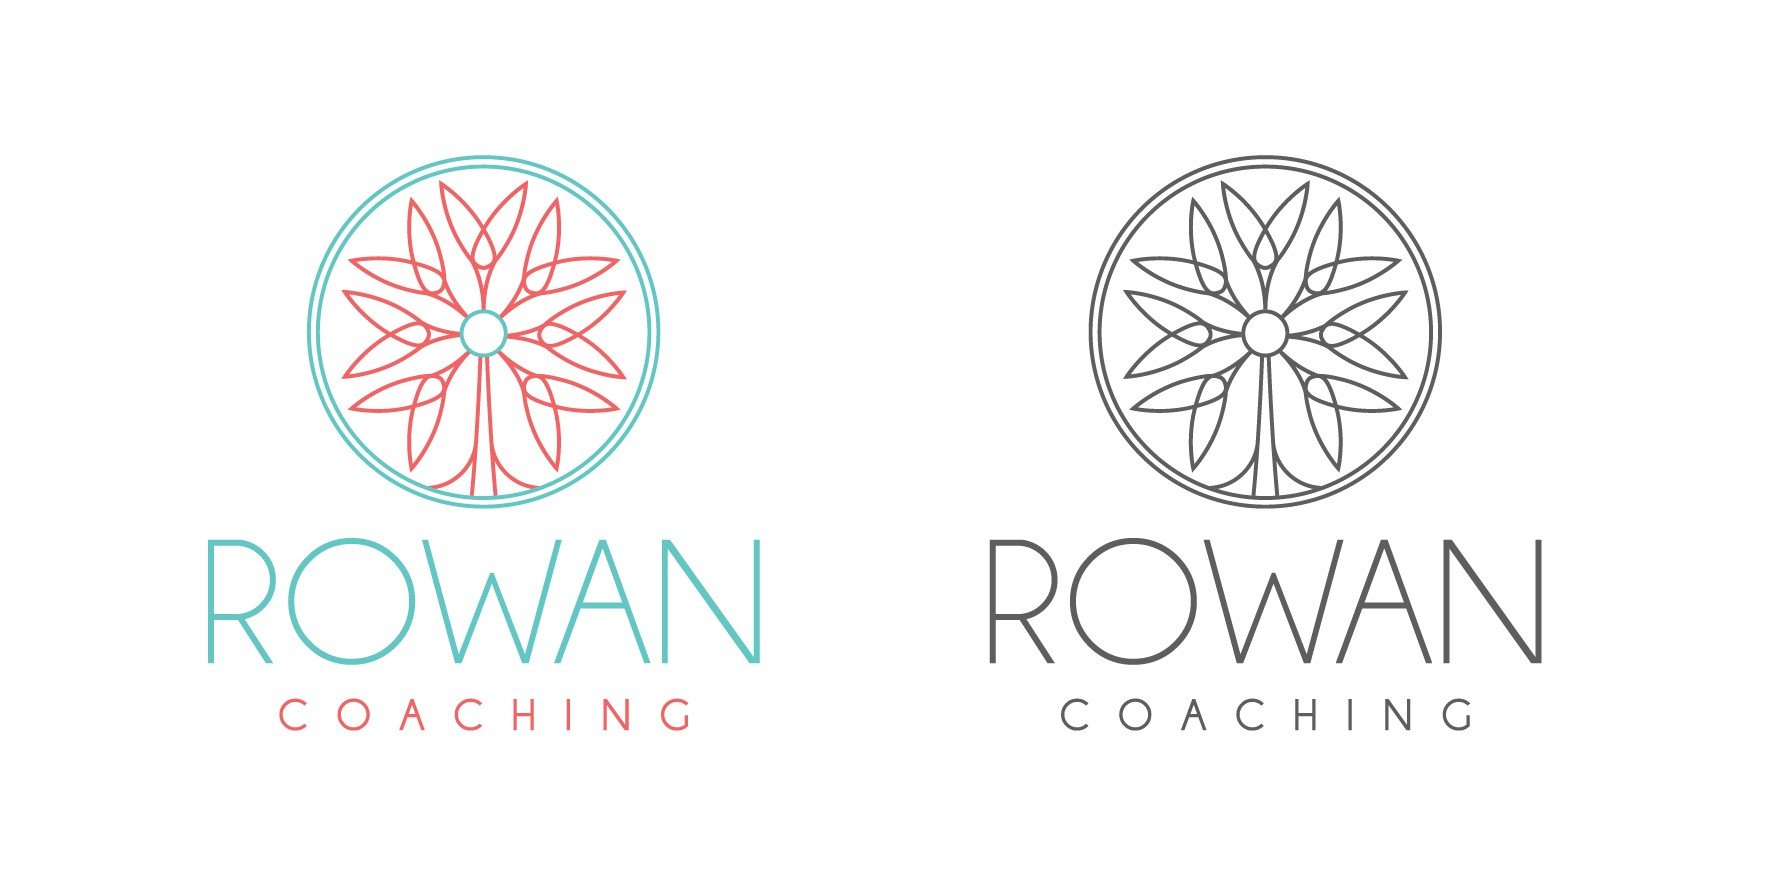 Rowan Coaching speaks to smart, creative humans. I want a logo that does too!